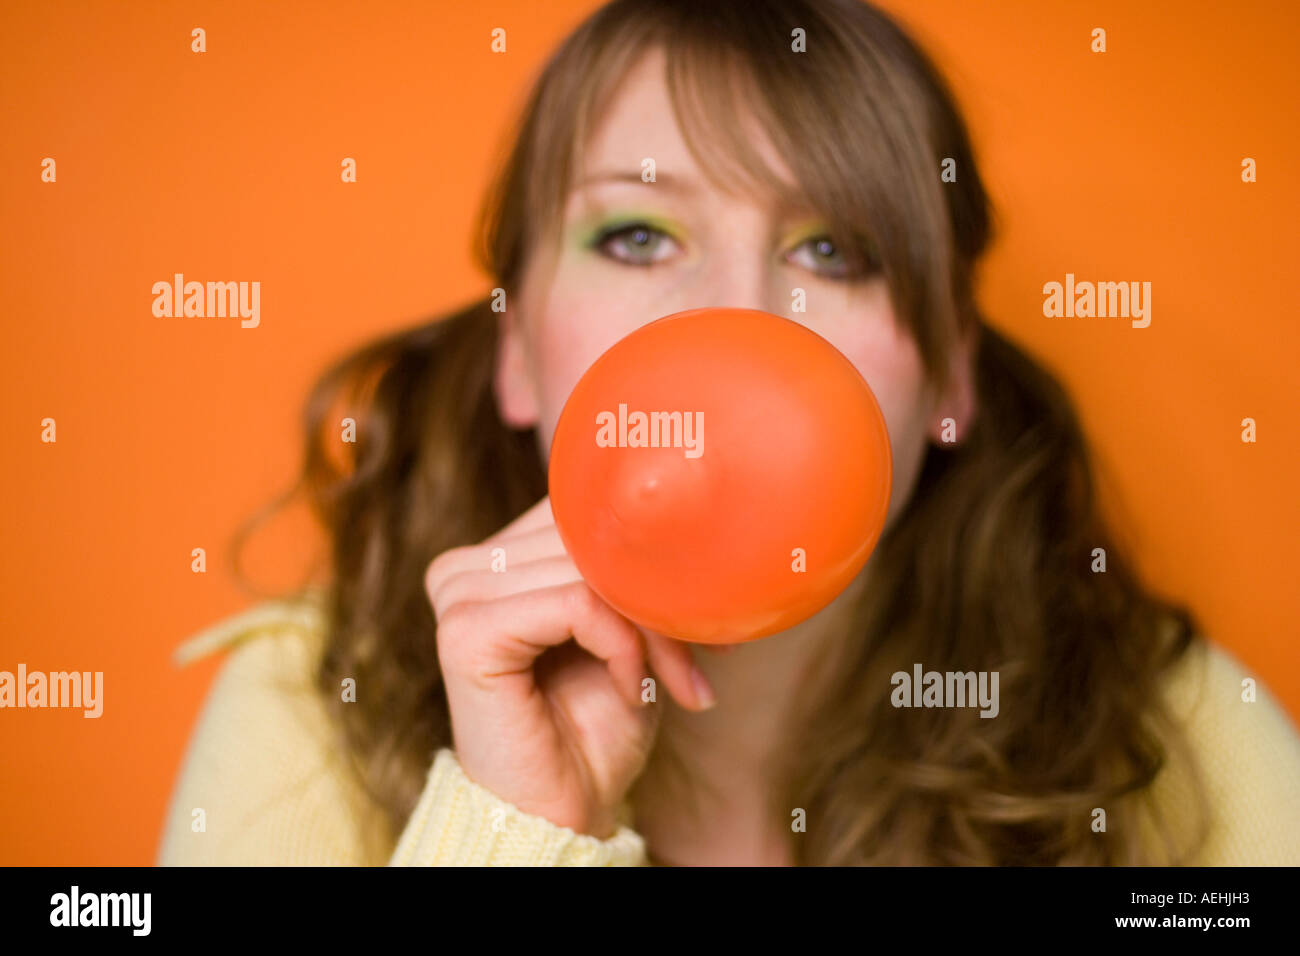 Young woman blowing up balloon - Stock Image